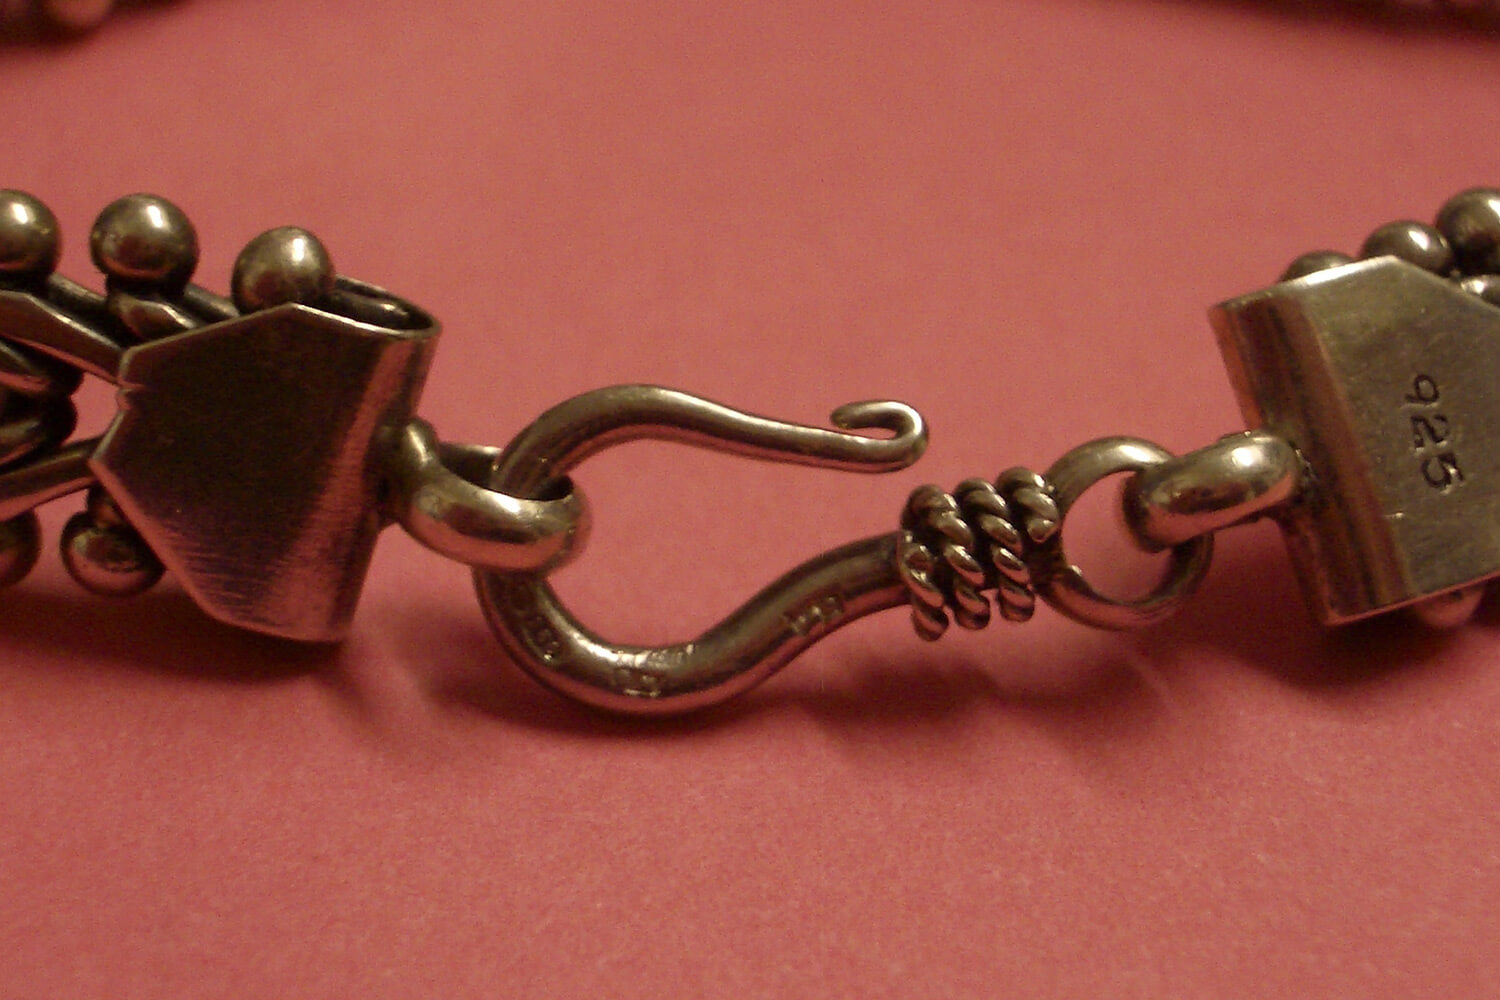 A 925 hallmark on the clasp of a bracelet indicates that it is likely sterling silver.